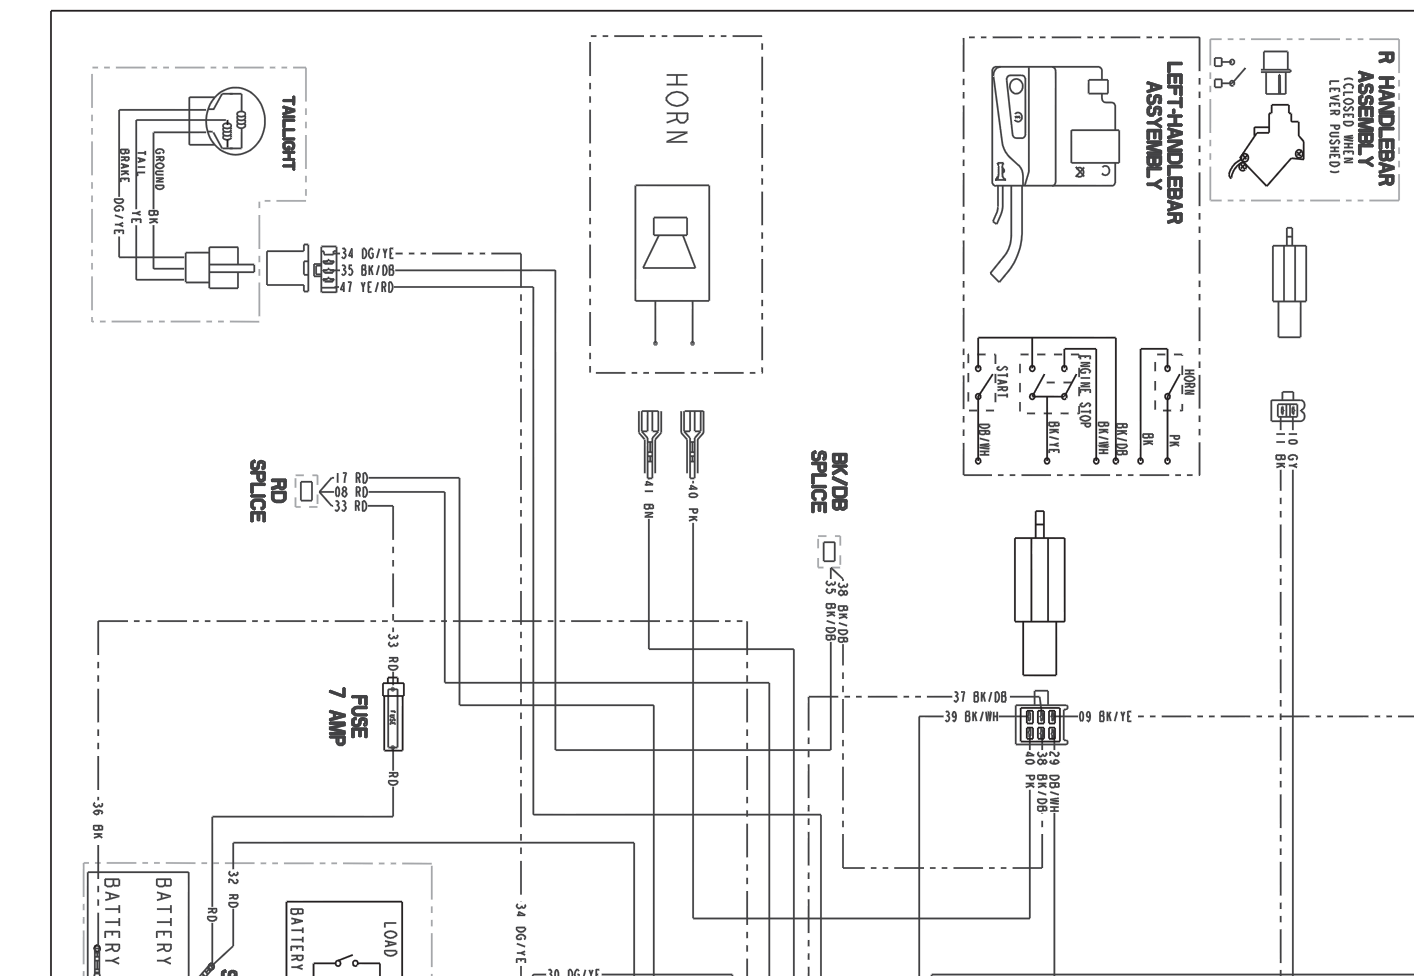 polaris predator 90 wiring diagram harness with 330 Polaris Sportsman Wiring Diagram on Diagram Electrical Circuit Diagram also Parts likewise 132074 Line Wiring Diagrams besides Omron Cj1wad081v1 Module Wiring Diagram also 4bz0d Find Wiring Diagram 1994 Polaris Trail.